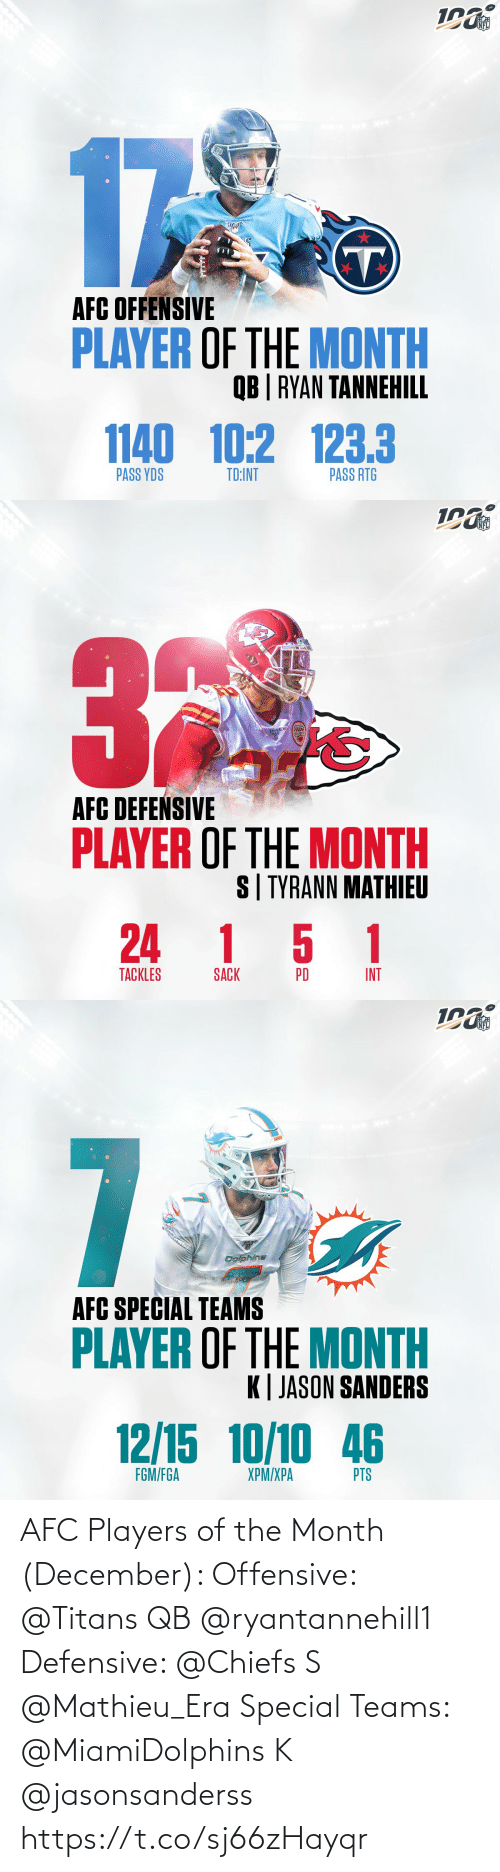 era: NFL  17  AFC OFFENSIVE  PLAYER OF THE MONTH  QB | RYAN TANNEHILL  1140 10:2 123.3  PASS RTG  PASS YDS  TD:INT   NFL  AFC DEFEŃSIVE  PLAYER OF THE MONTH  S| TYRANN MATHIEU  24 1 5 1  TACKLES  INT  PD  SACK   NFL  7  Dolphins  AFC SPECIAL TEAMS  PLAYER OF THE MONTH  K| JASON SANDERS  12/15 10/10 46  FGM/FGA  XPM/XPA  PTS AFC Players of the Month (December):   Offensive: @Titans QB @ryantannehill1    Defensive: @Chiefs S @Mathieu_Era   Special Teams: @MiamiDolphins K @jasonsanderss https://t.co/sj66zHayqr